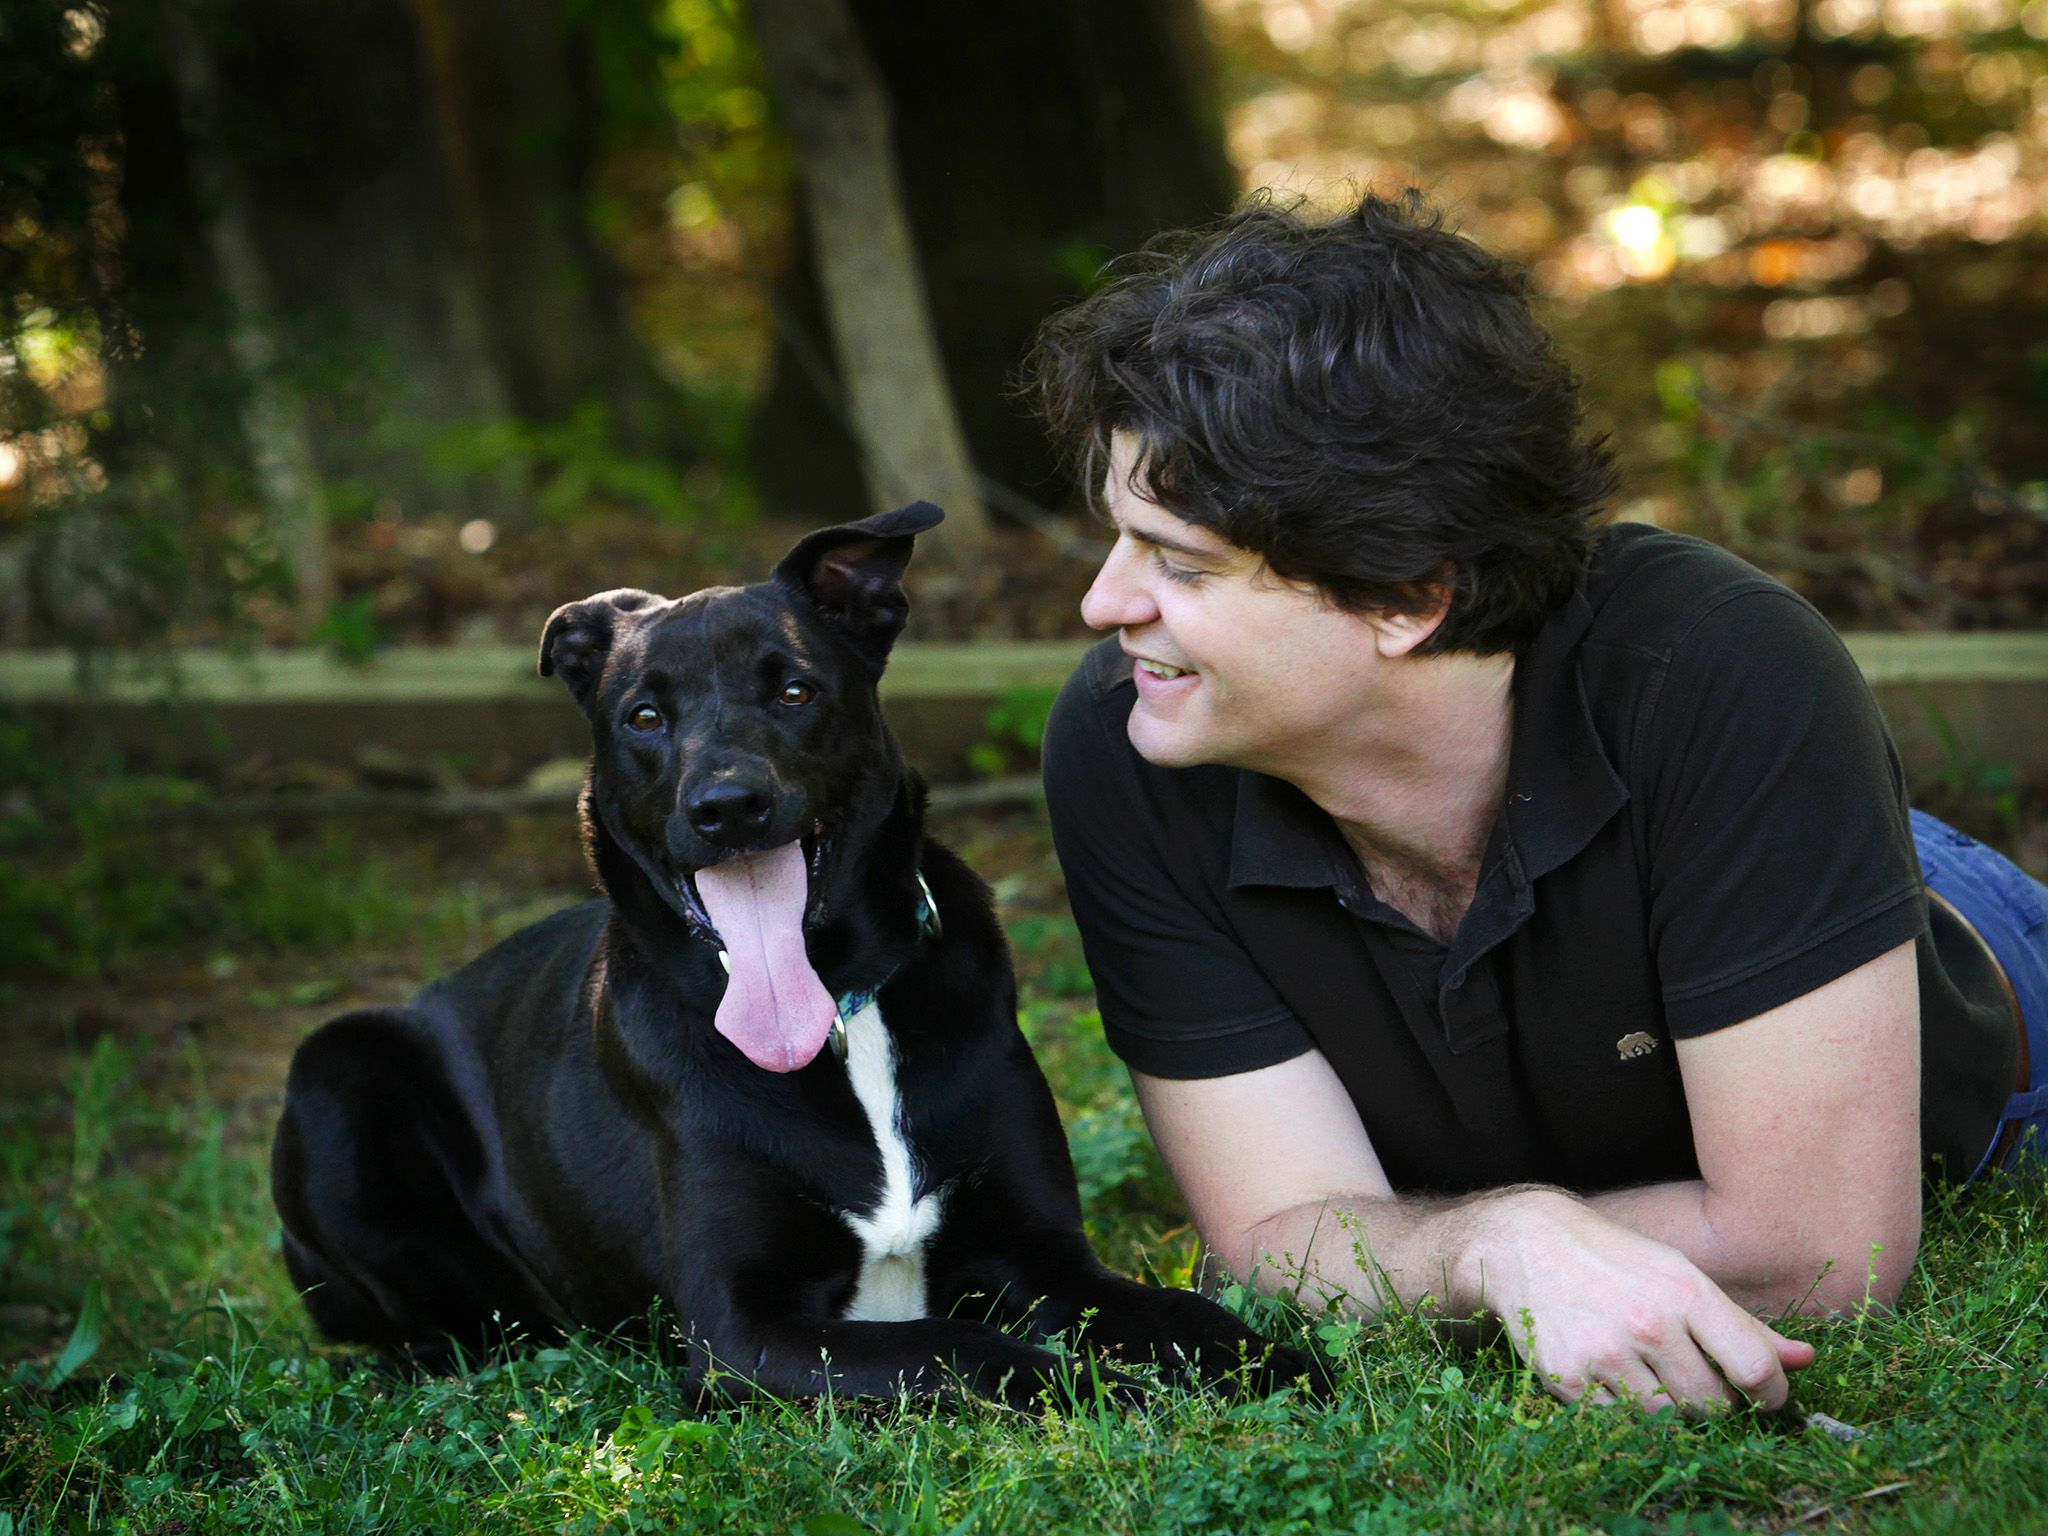 Dr. Brian Hare with Tassie the dog. This image is from Is Your Dog A Genius? [Photo of the day - آوریل 2015]